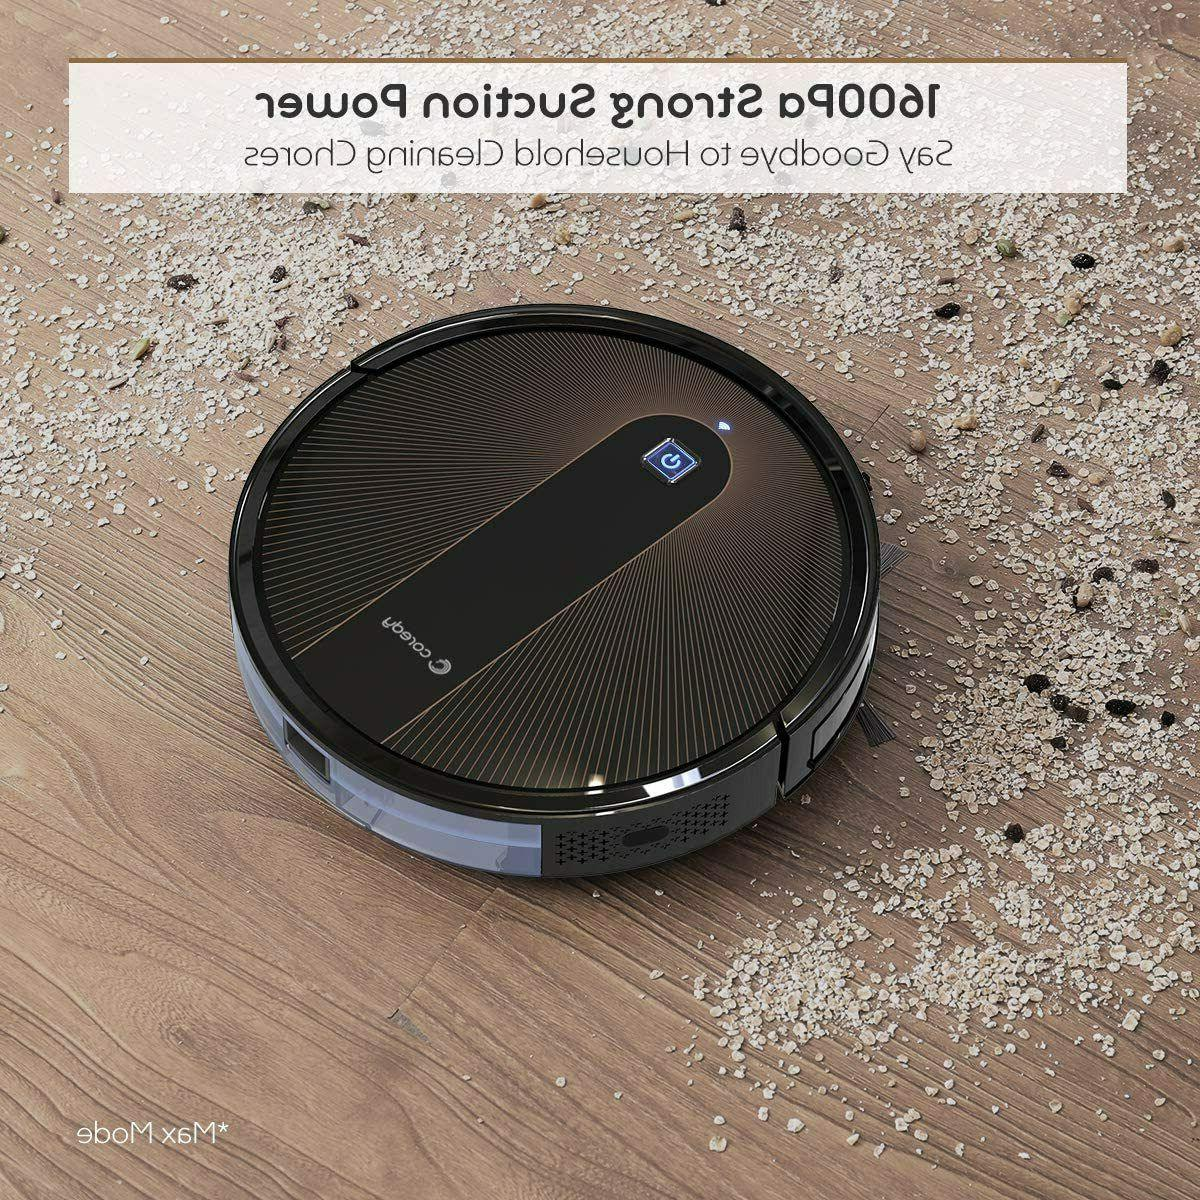 Coredy R750 Robot Cleaner, Mopping